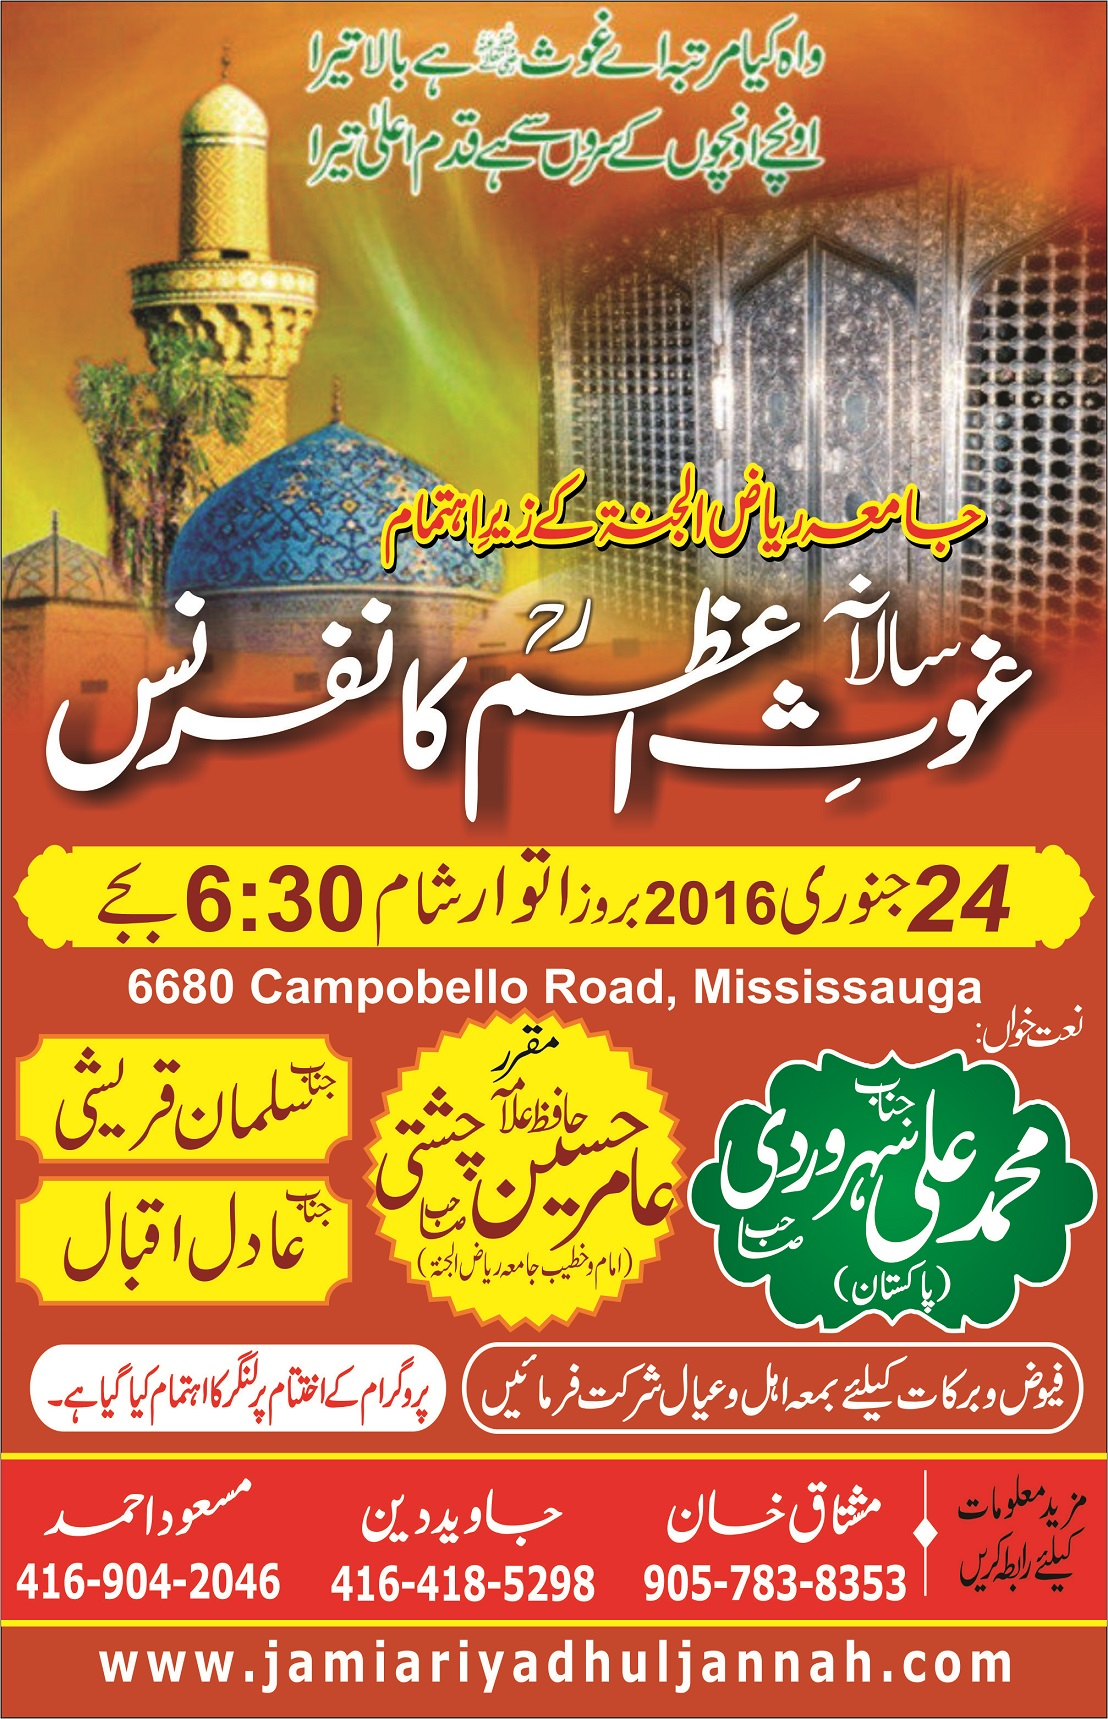 Ghous-e-Azam-Conference-JRJ-Mississauga-January-24-2016